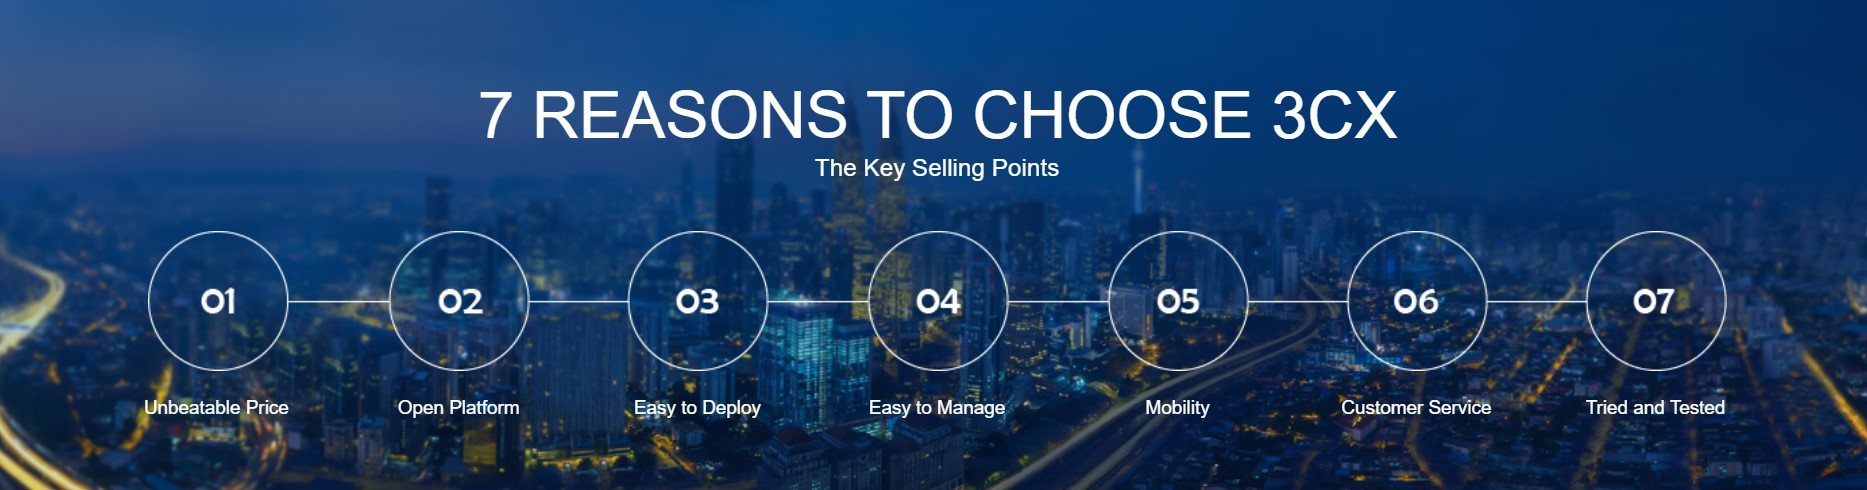 7 REASONS TO CHOOSE 3CX